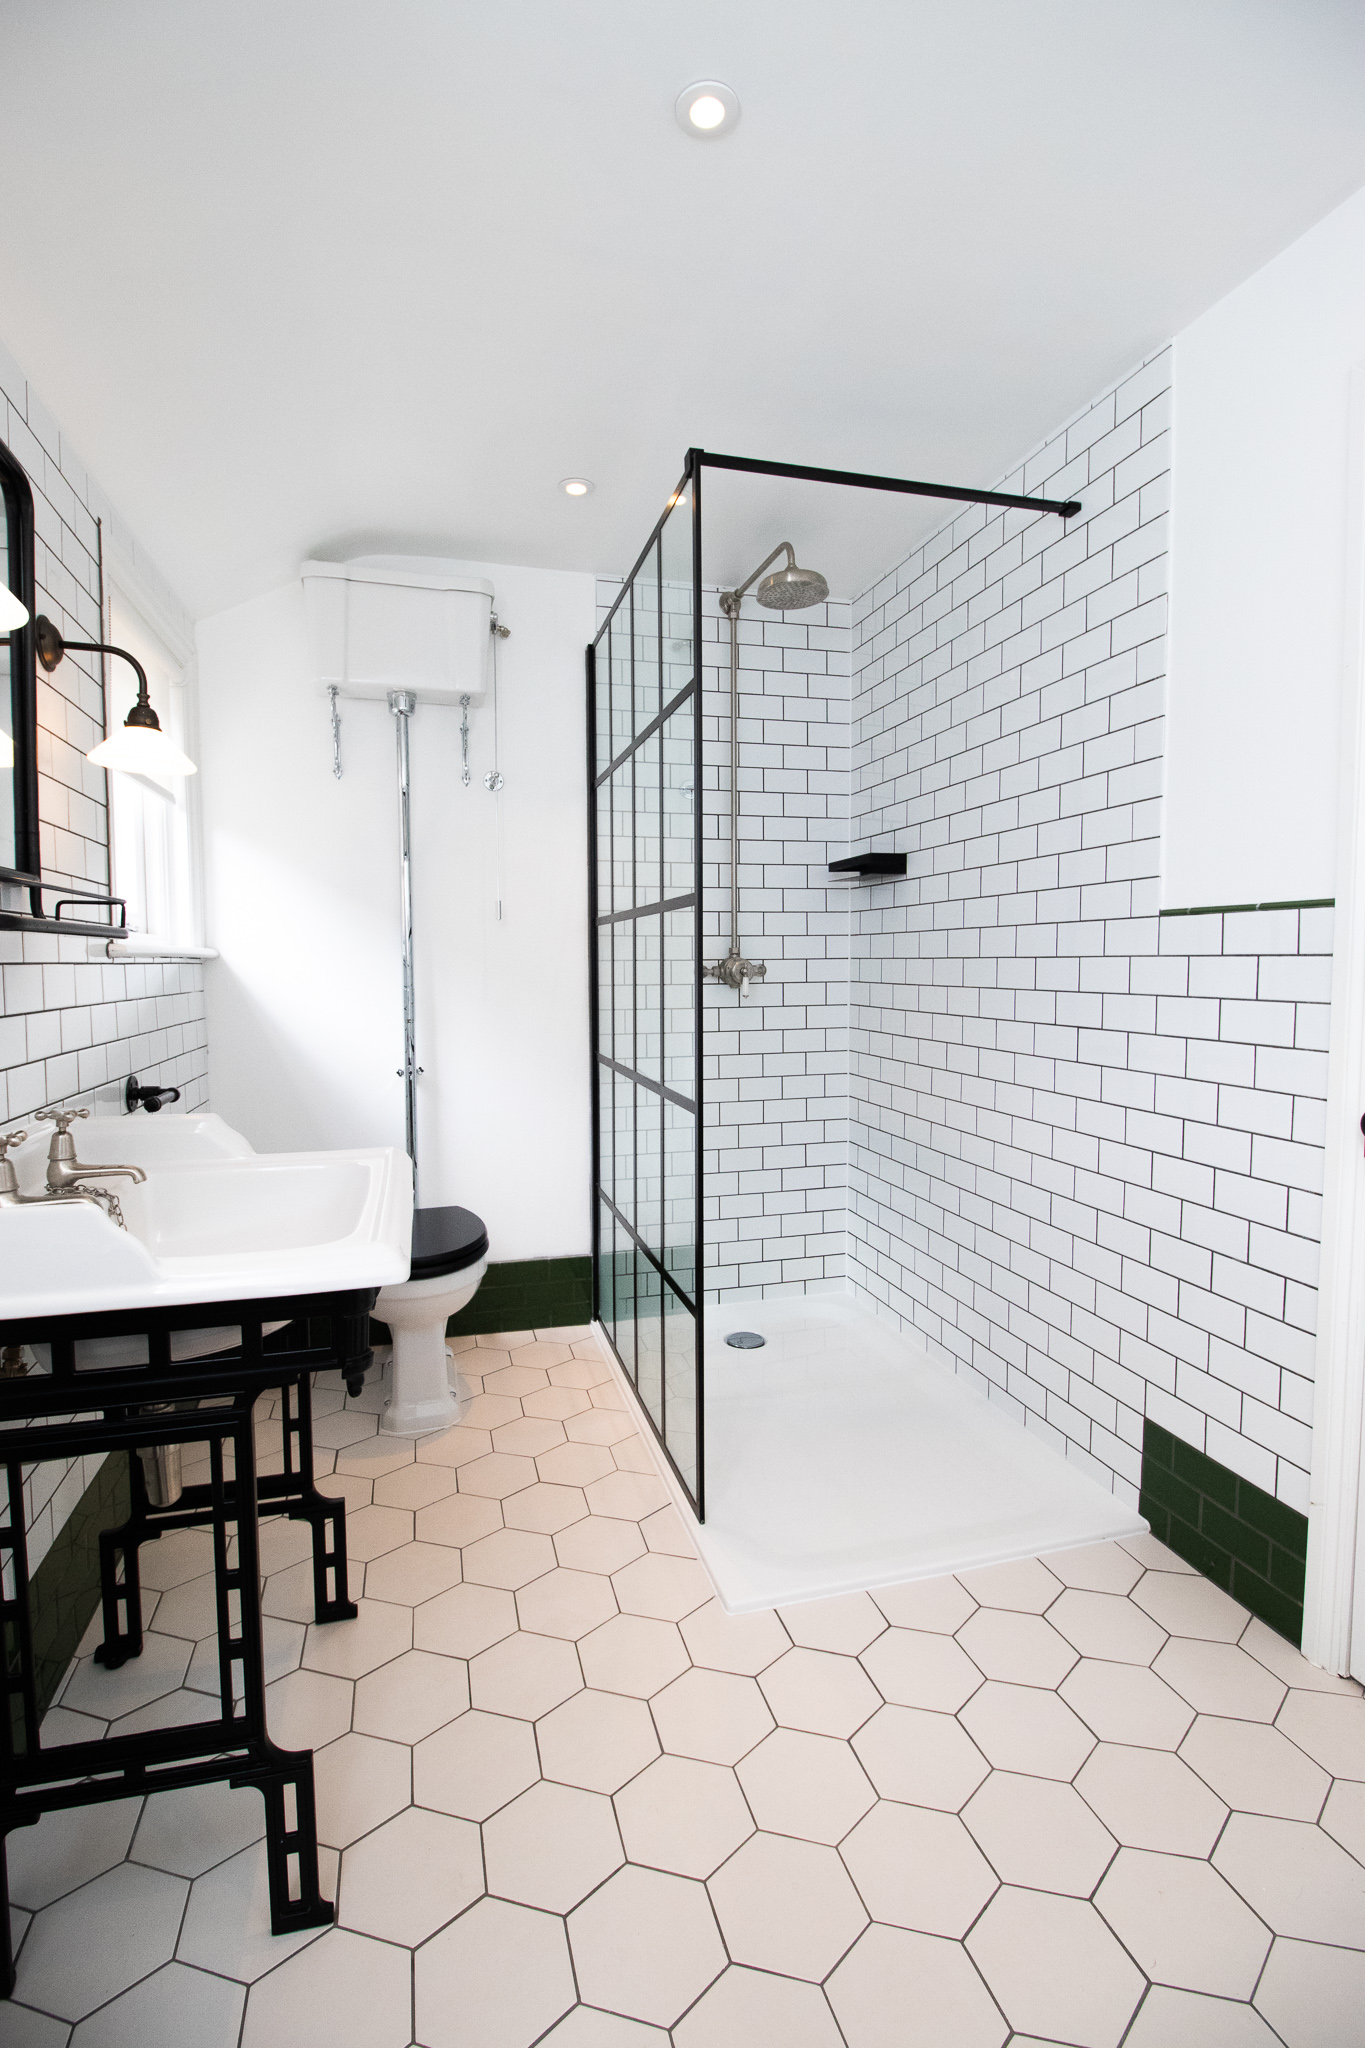 SHOWER, CRITTEL SHOWER, WHITE BATHROOM, METRO TILE.jpg